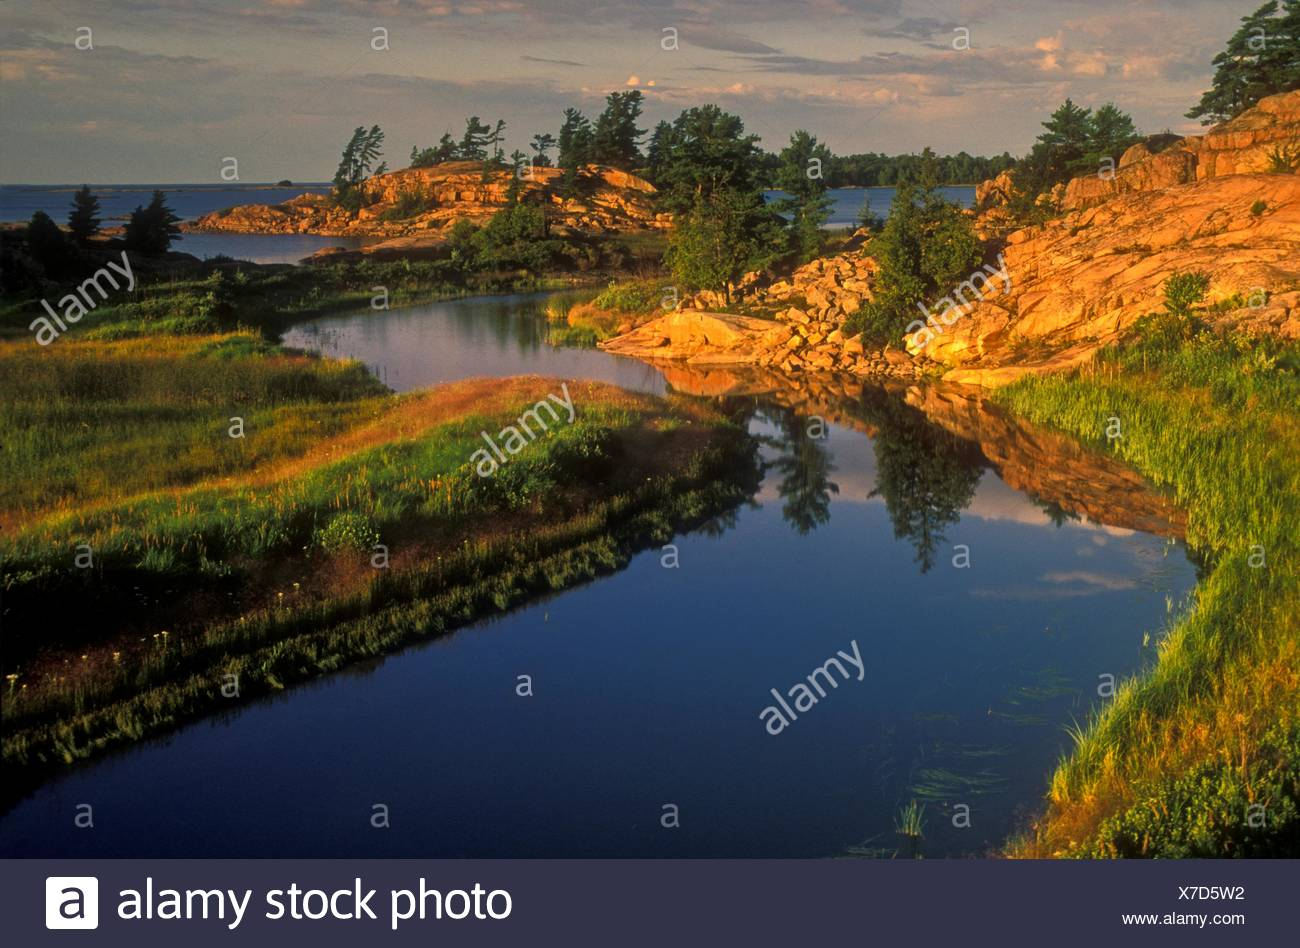 Evening light on granites and white pine at mouth of Chikanishing Creek in Georgian Bay, Killarney Provincial Park, Ontario, Canada. - Stock Image